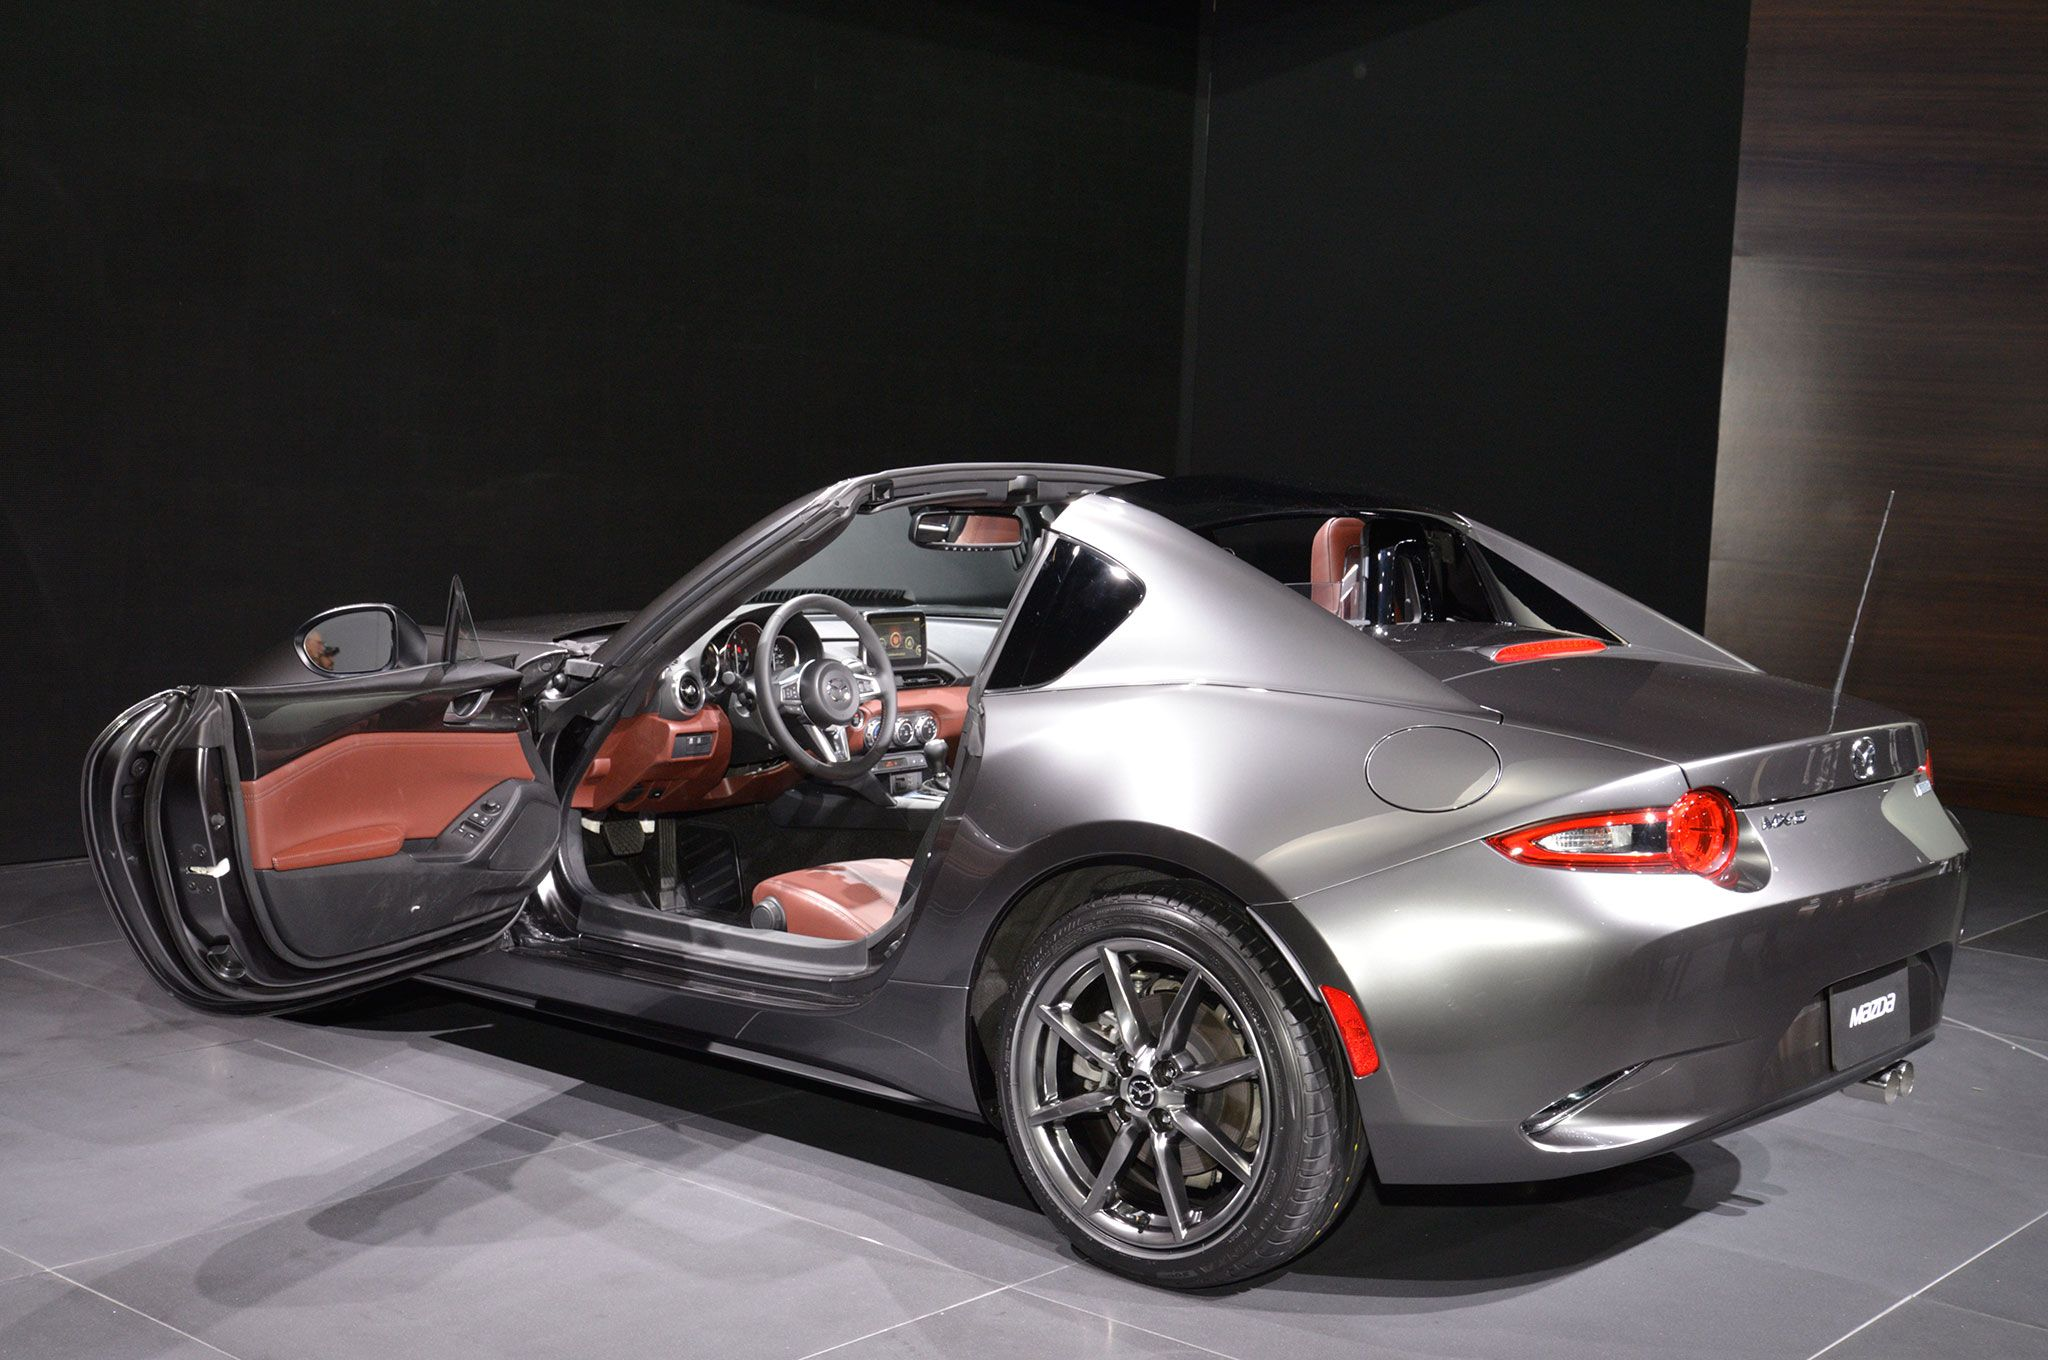 5 Coolest Things About The 2017 Mazda Mx 5 Miata Rf Mazda Mazda